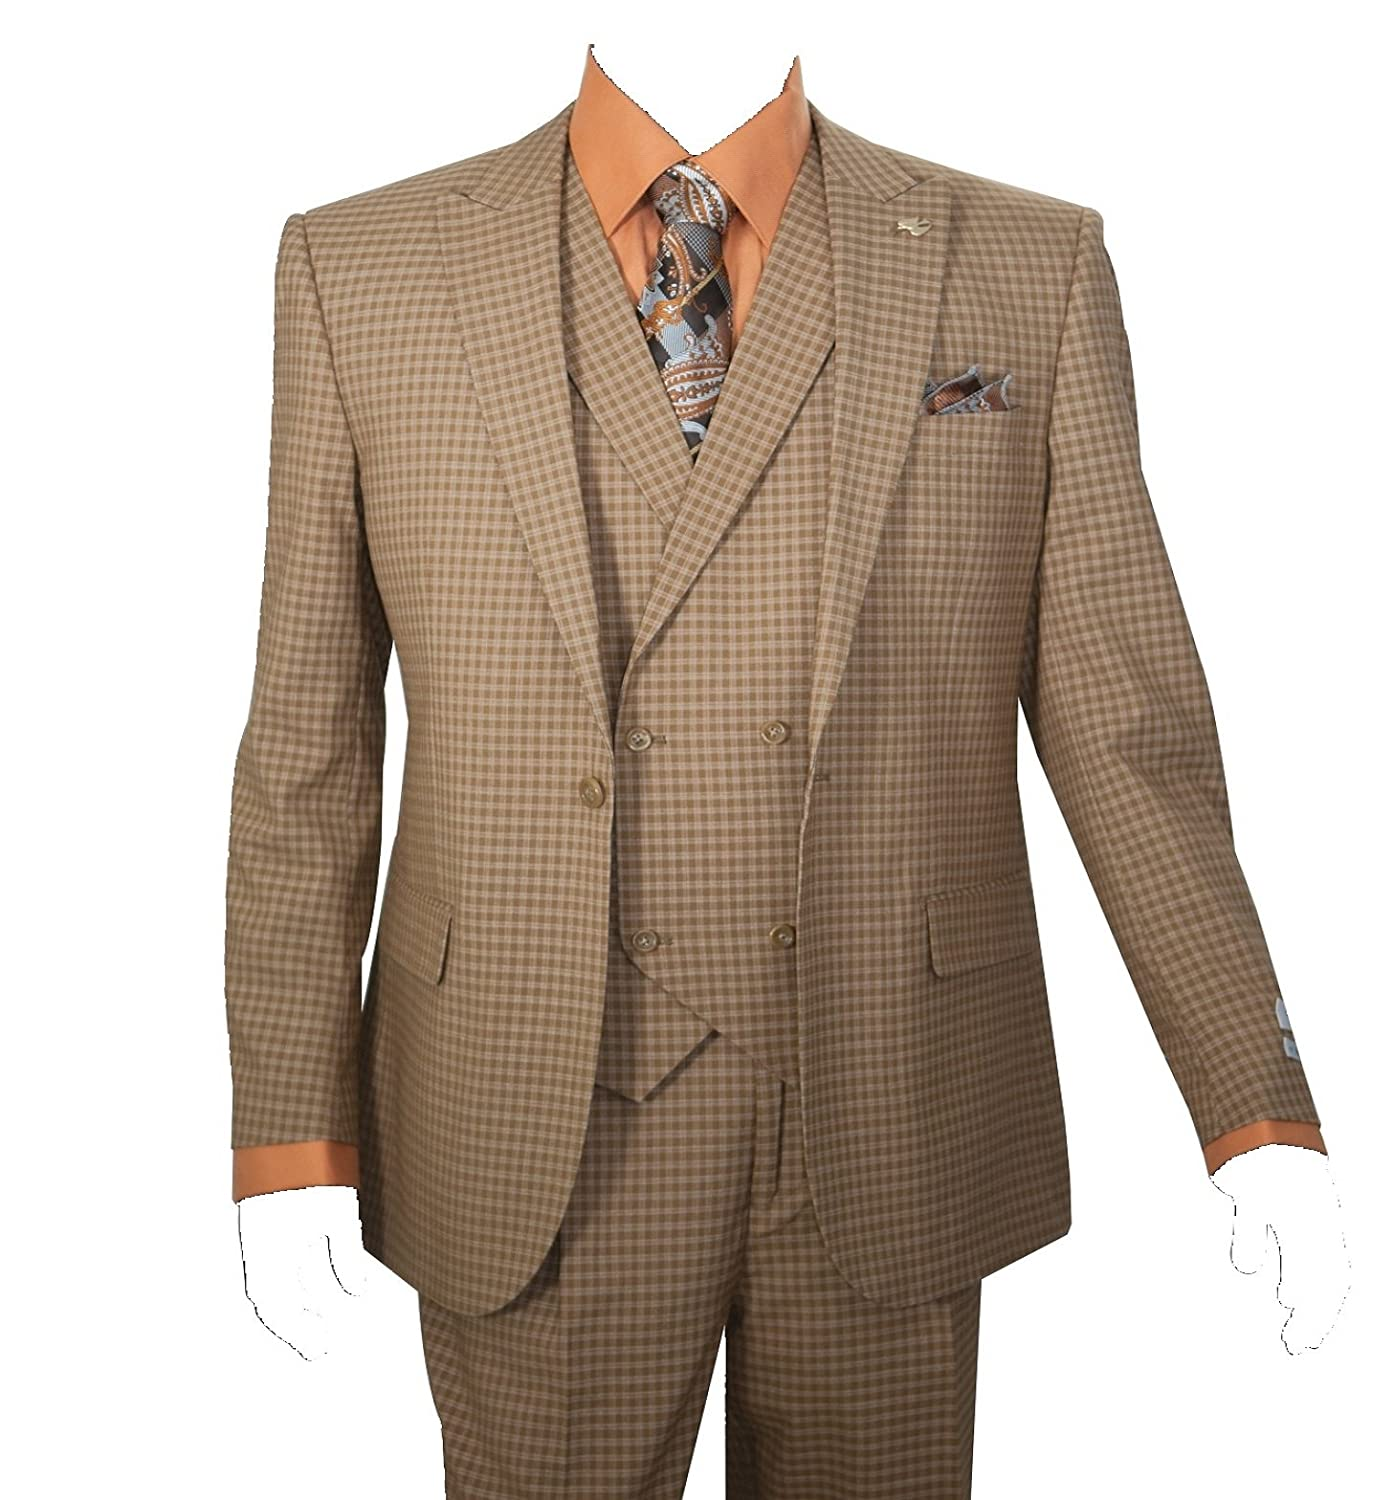 DressinGreatGatsbyClothesforMen Mens 3 Piece Single Button Mini-Plaid Pattern Suit (Taupe) $149.99 AT vintagedancer.com